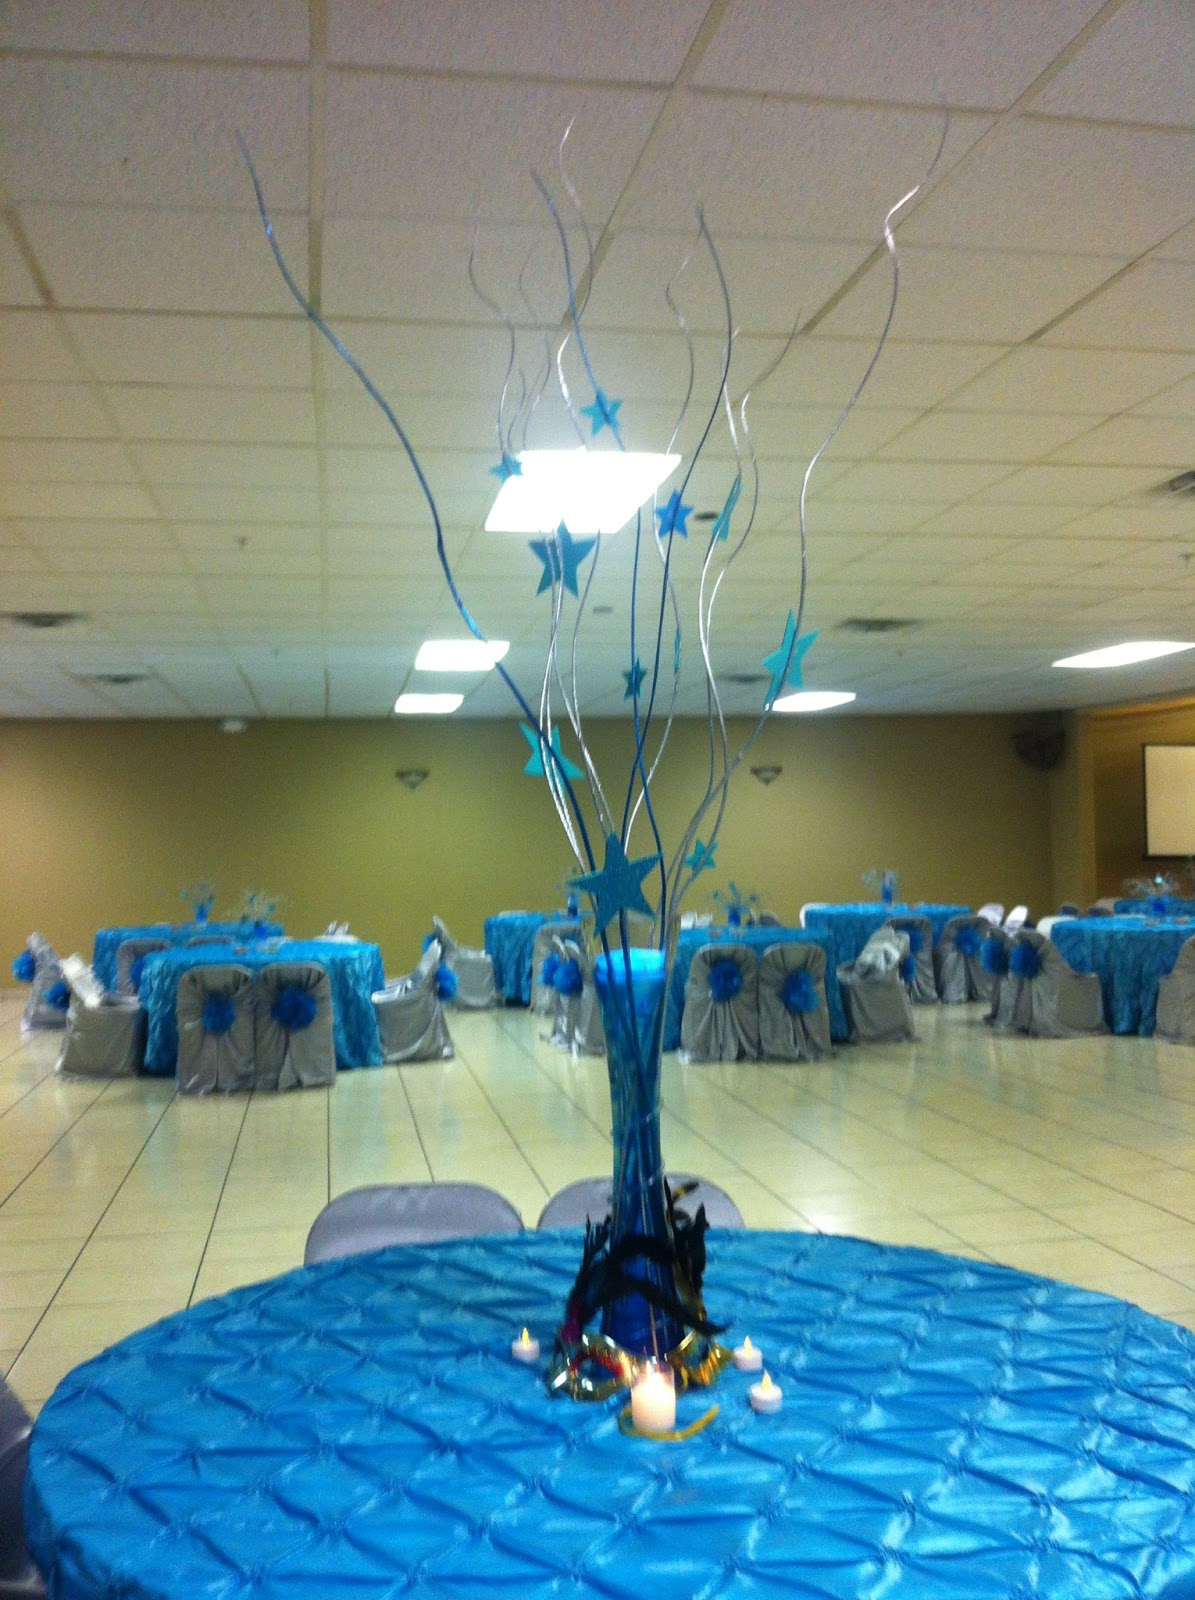 Rincon Real Hall Decorations: Perfect Centerpiece for a ...